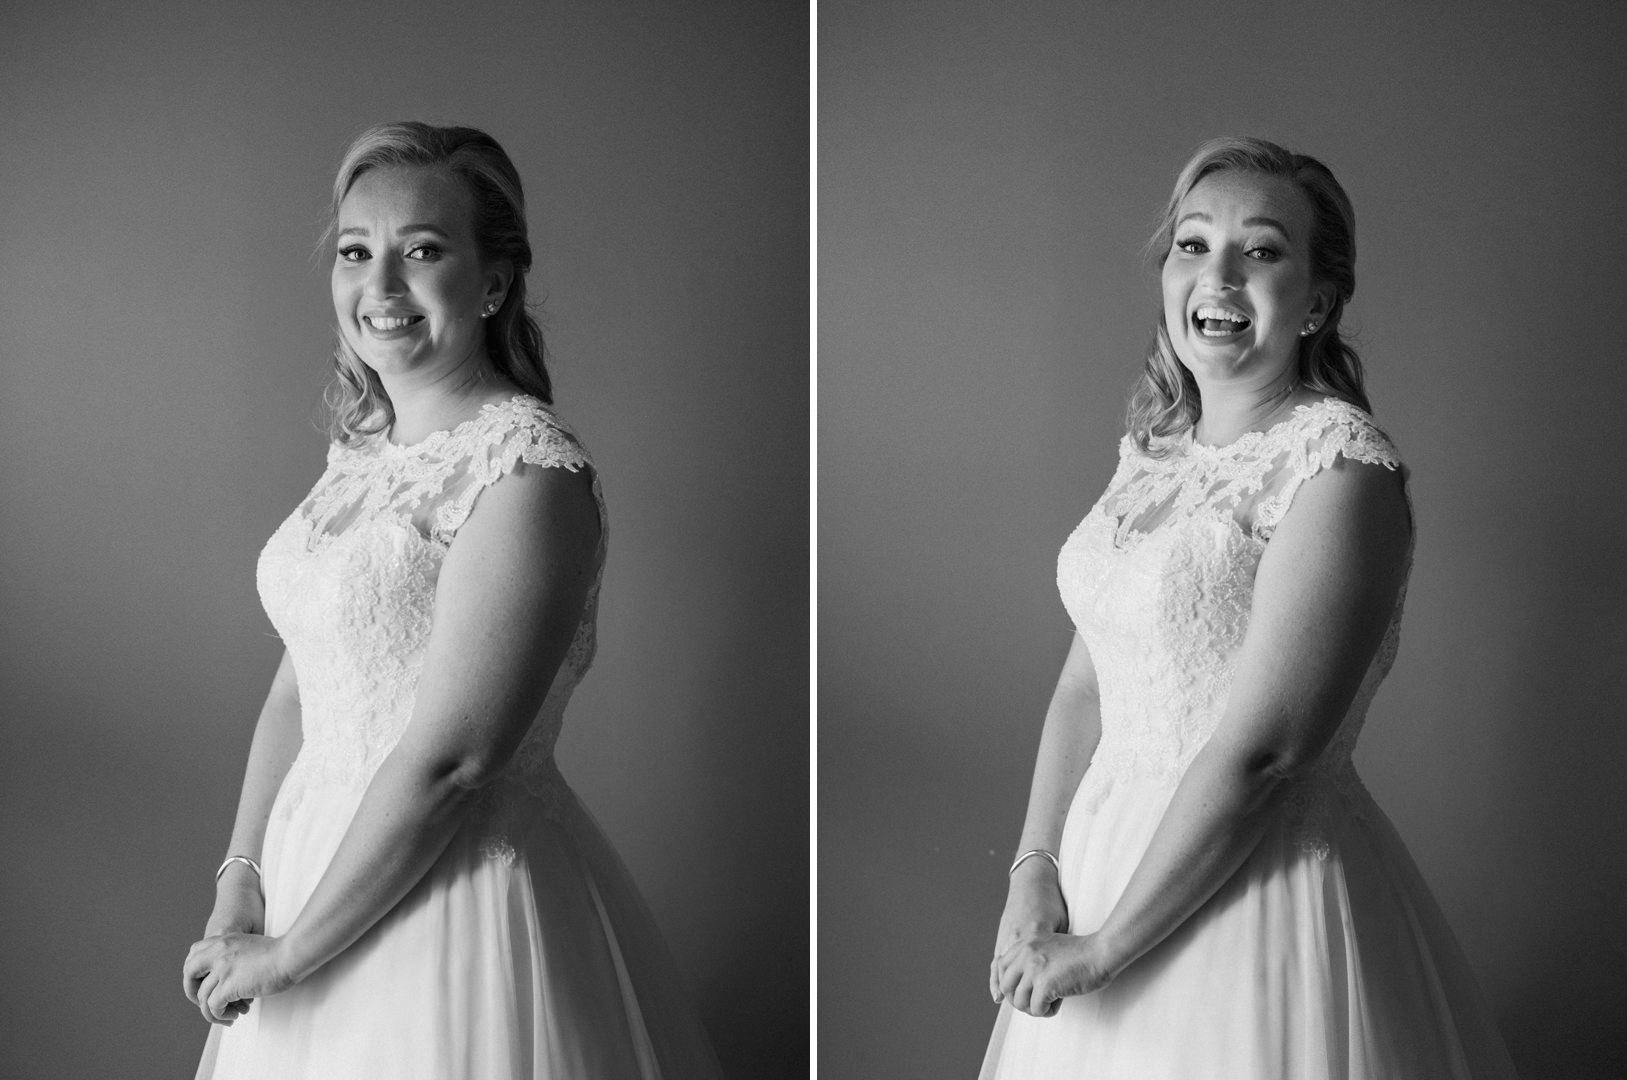 Windermere House bridal wedding dress portrait